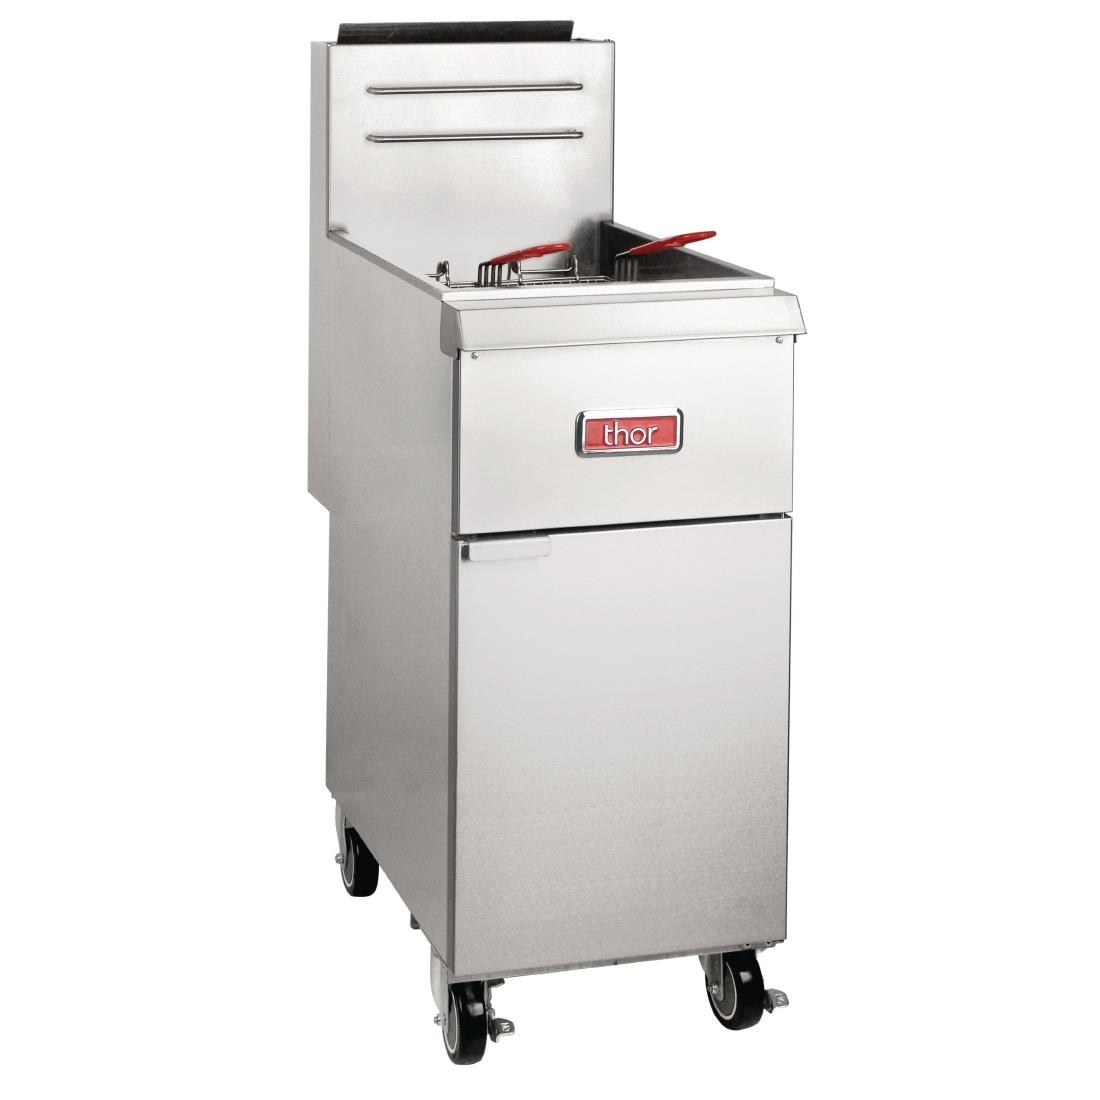 Thor Single Tank Twin Basket Free Standing Natural Gas Fryer 20Ltr